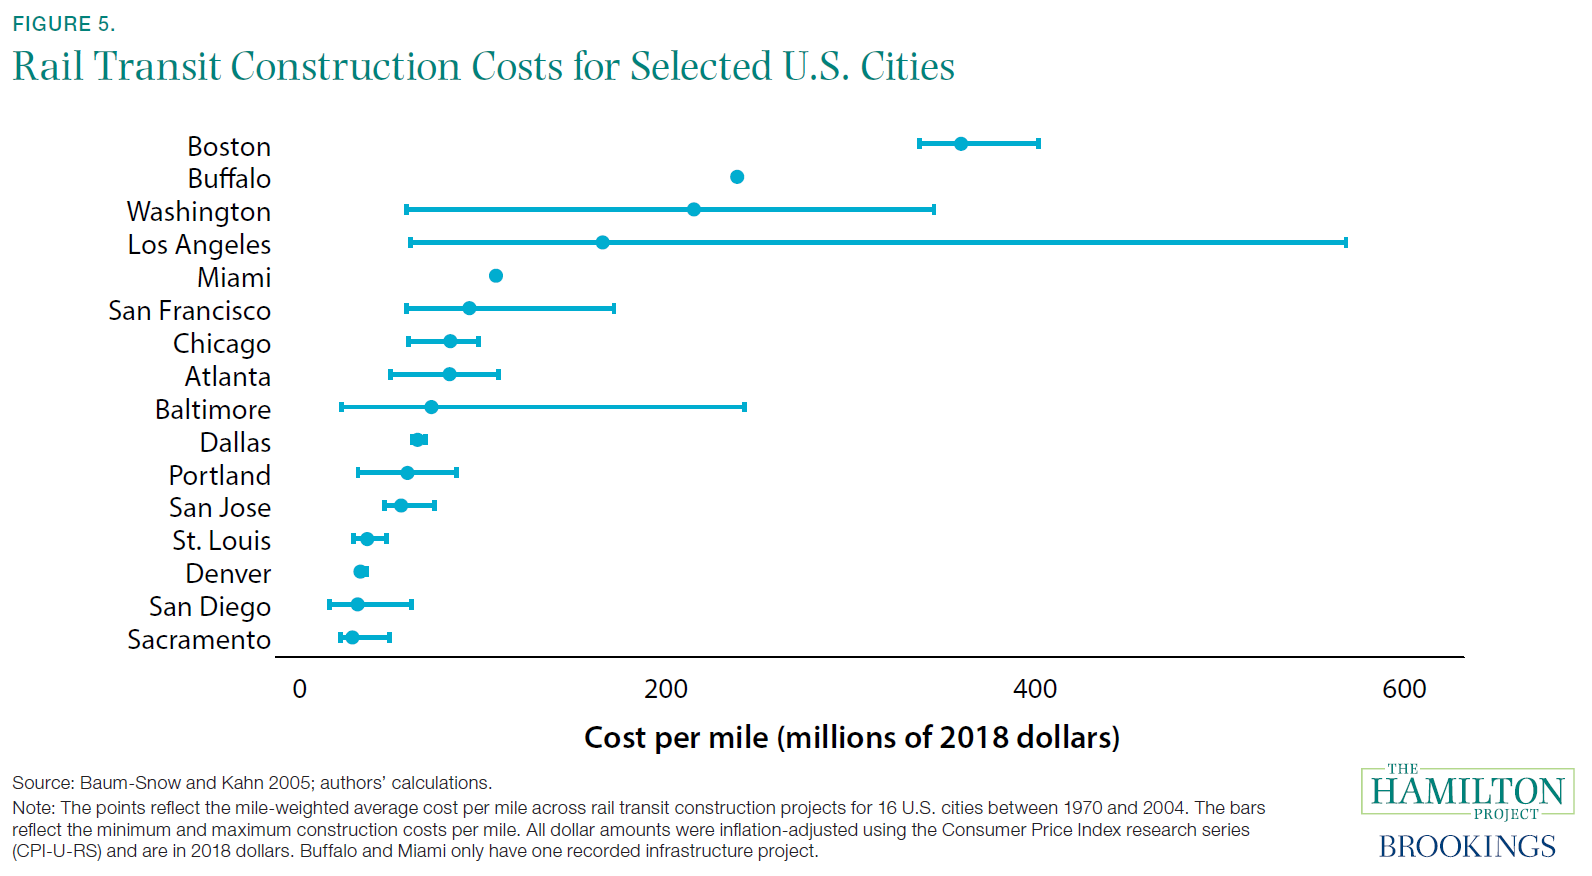 Rail Transit Construction Costs for Selected U.S. Cities